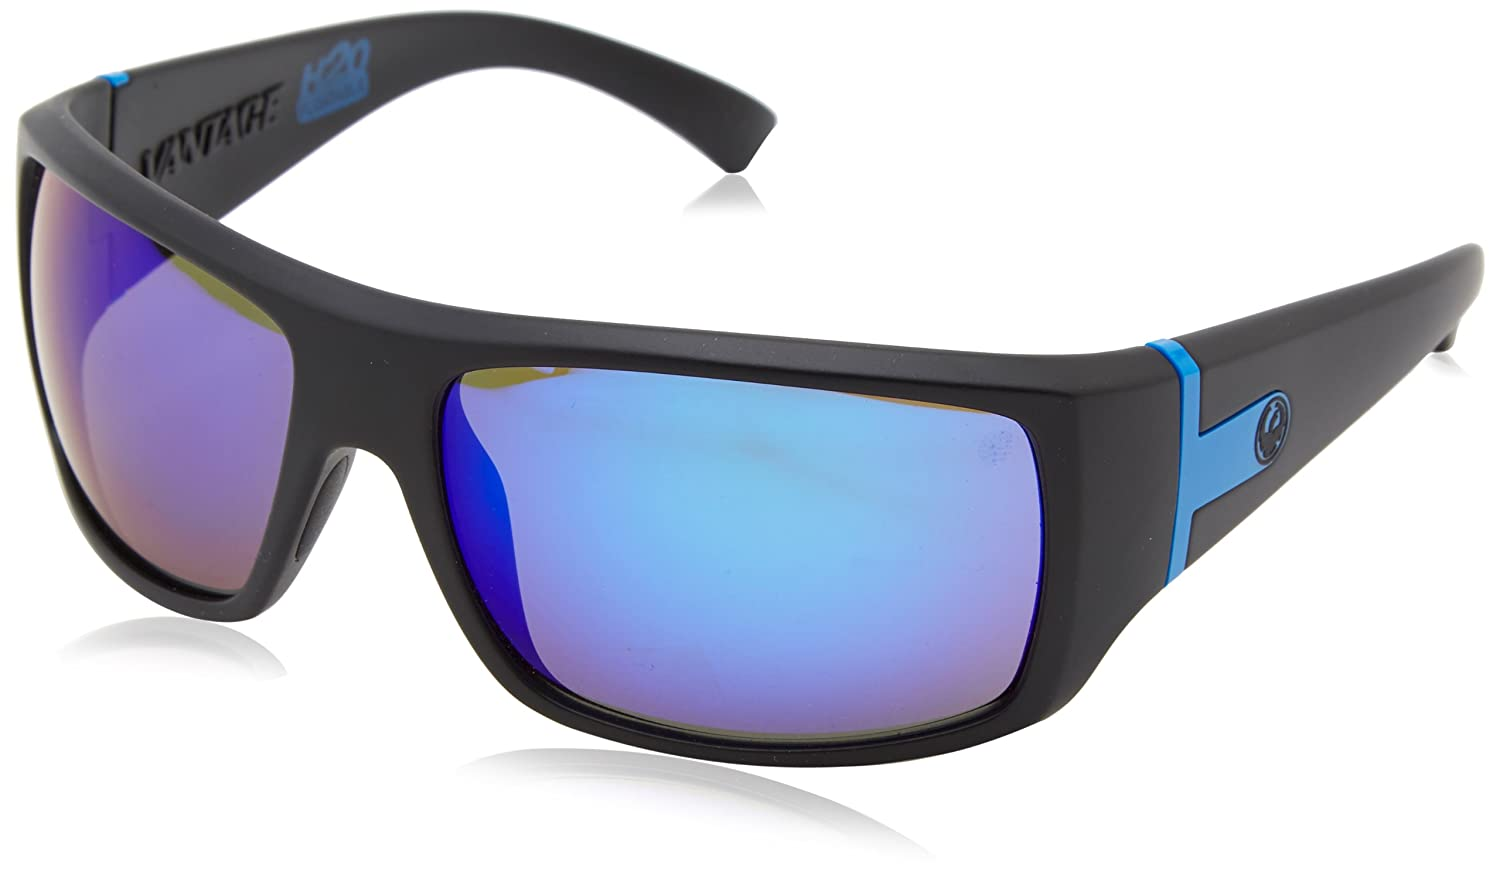 d52f7252c3 Amazon.com  Dragon Alliance Vantage Matte P2 Sunglasses